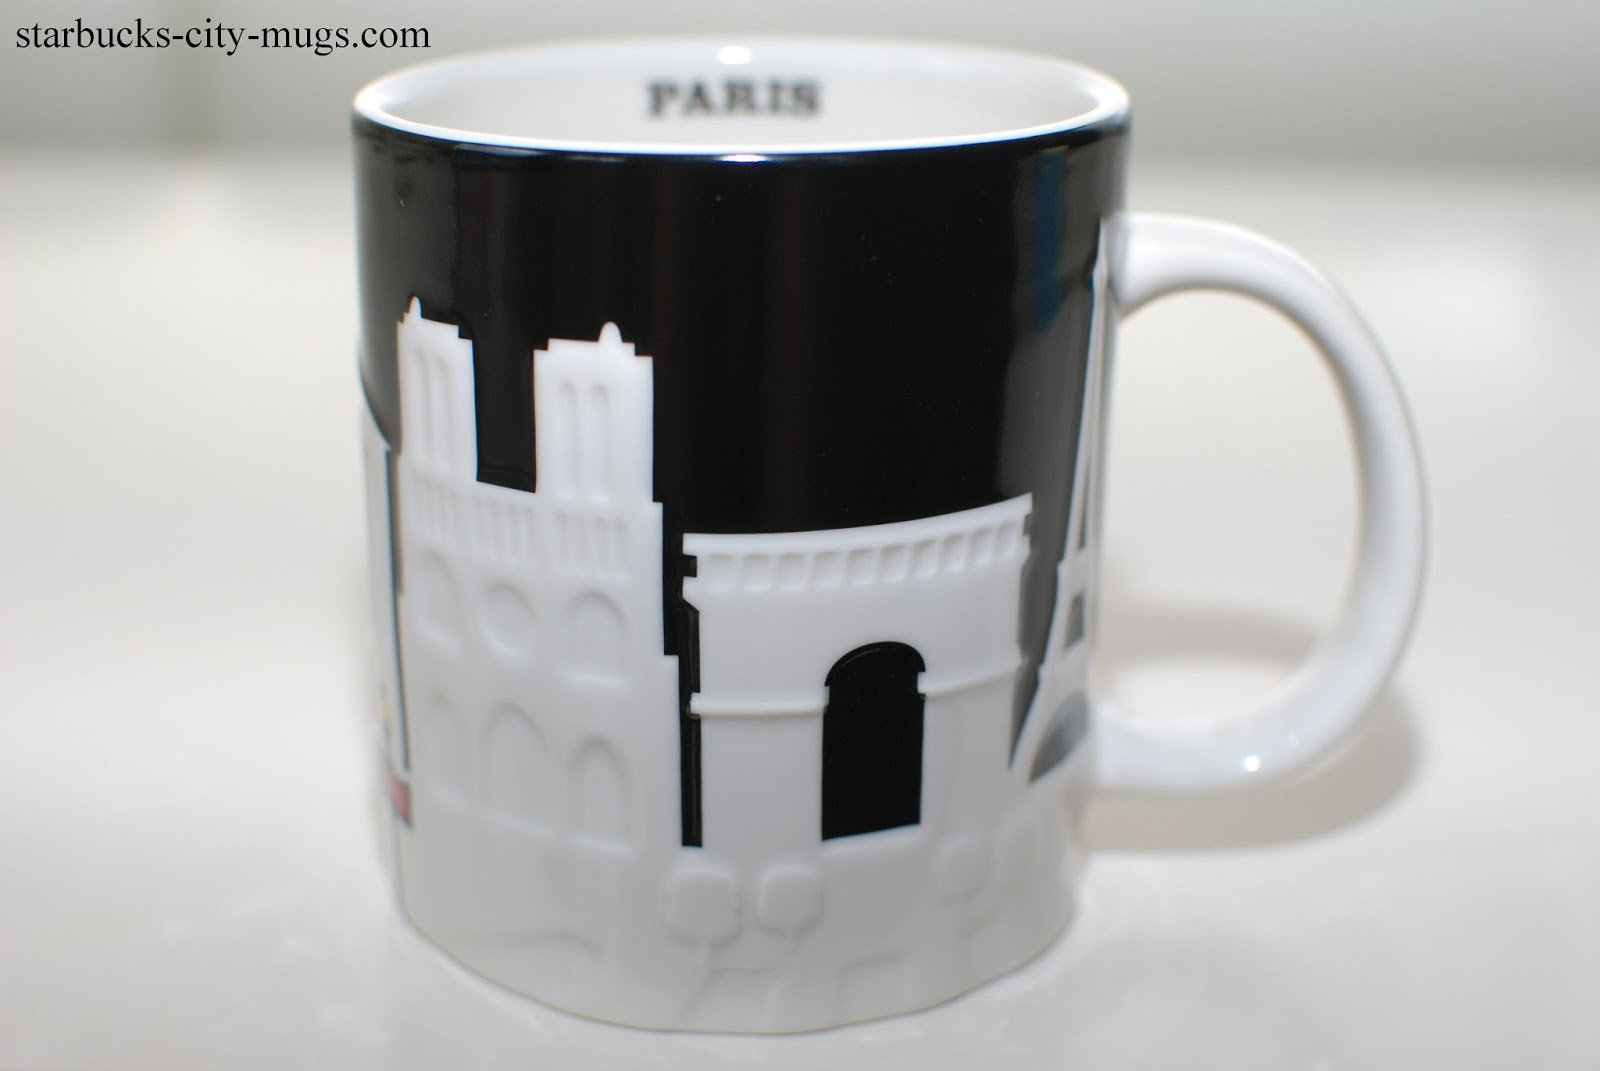 Starbucks City Mugs Relief Mugs